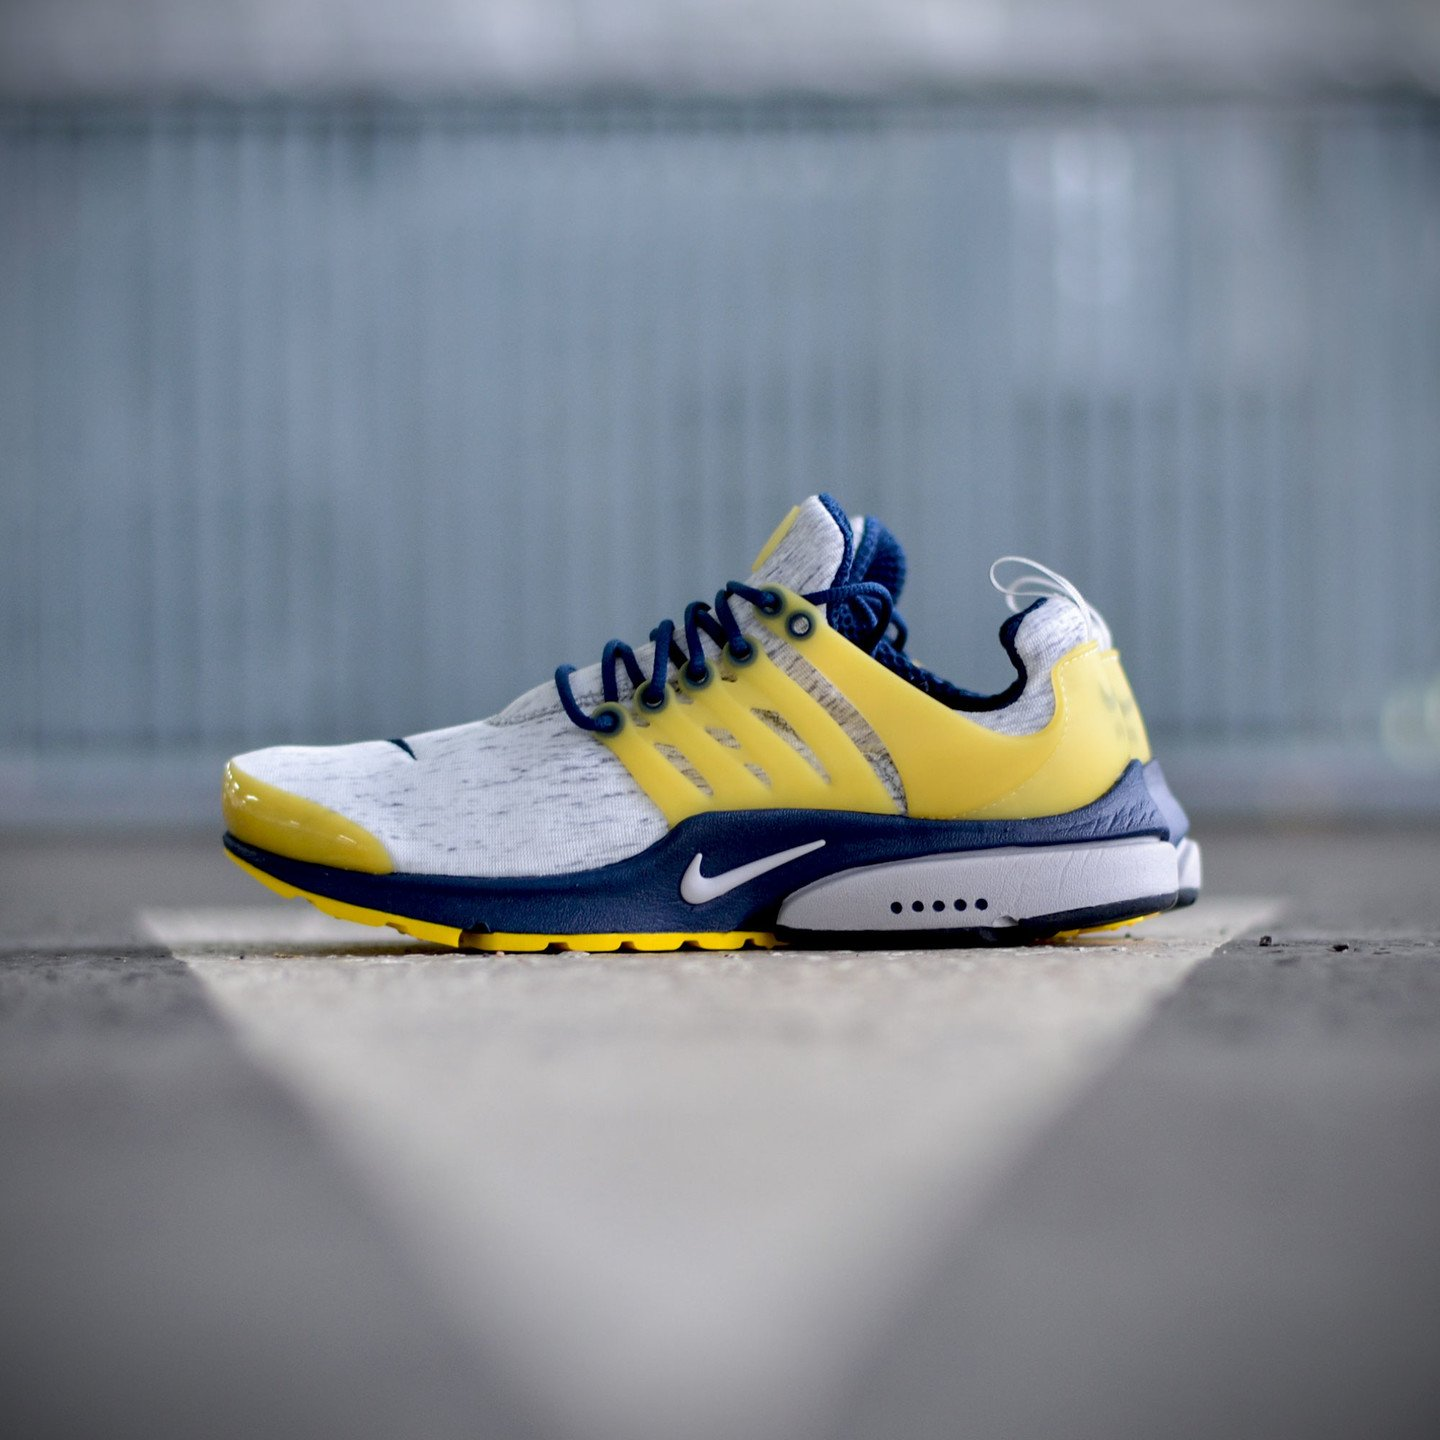 Nike Air Presto 'Shady Milkman' Zen Grey / Midnight Navy 305919-041-XL